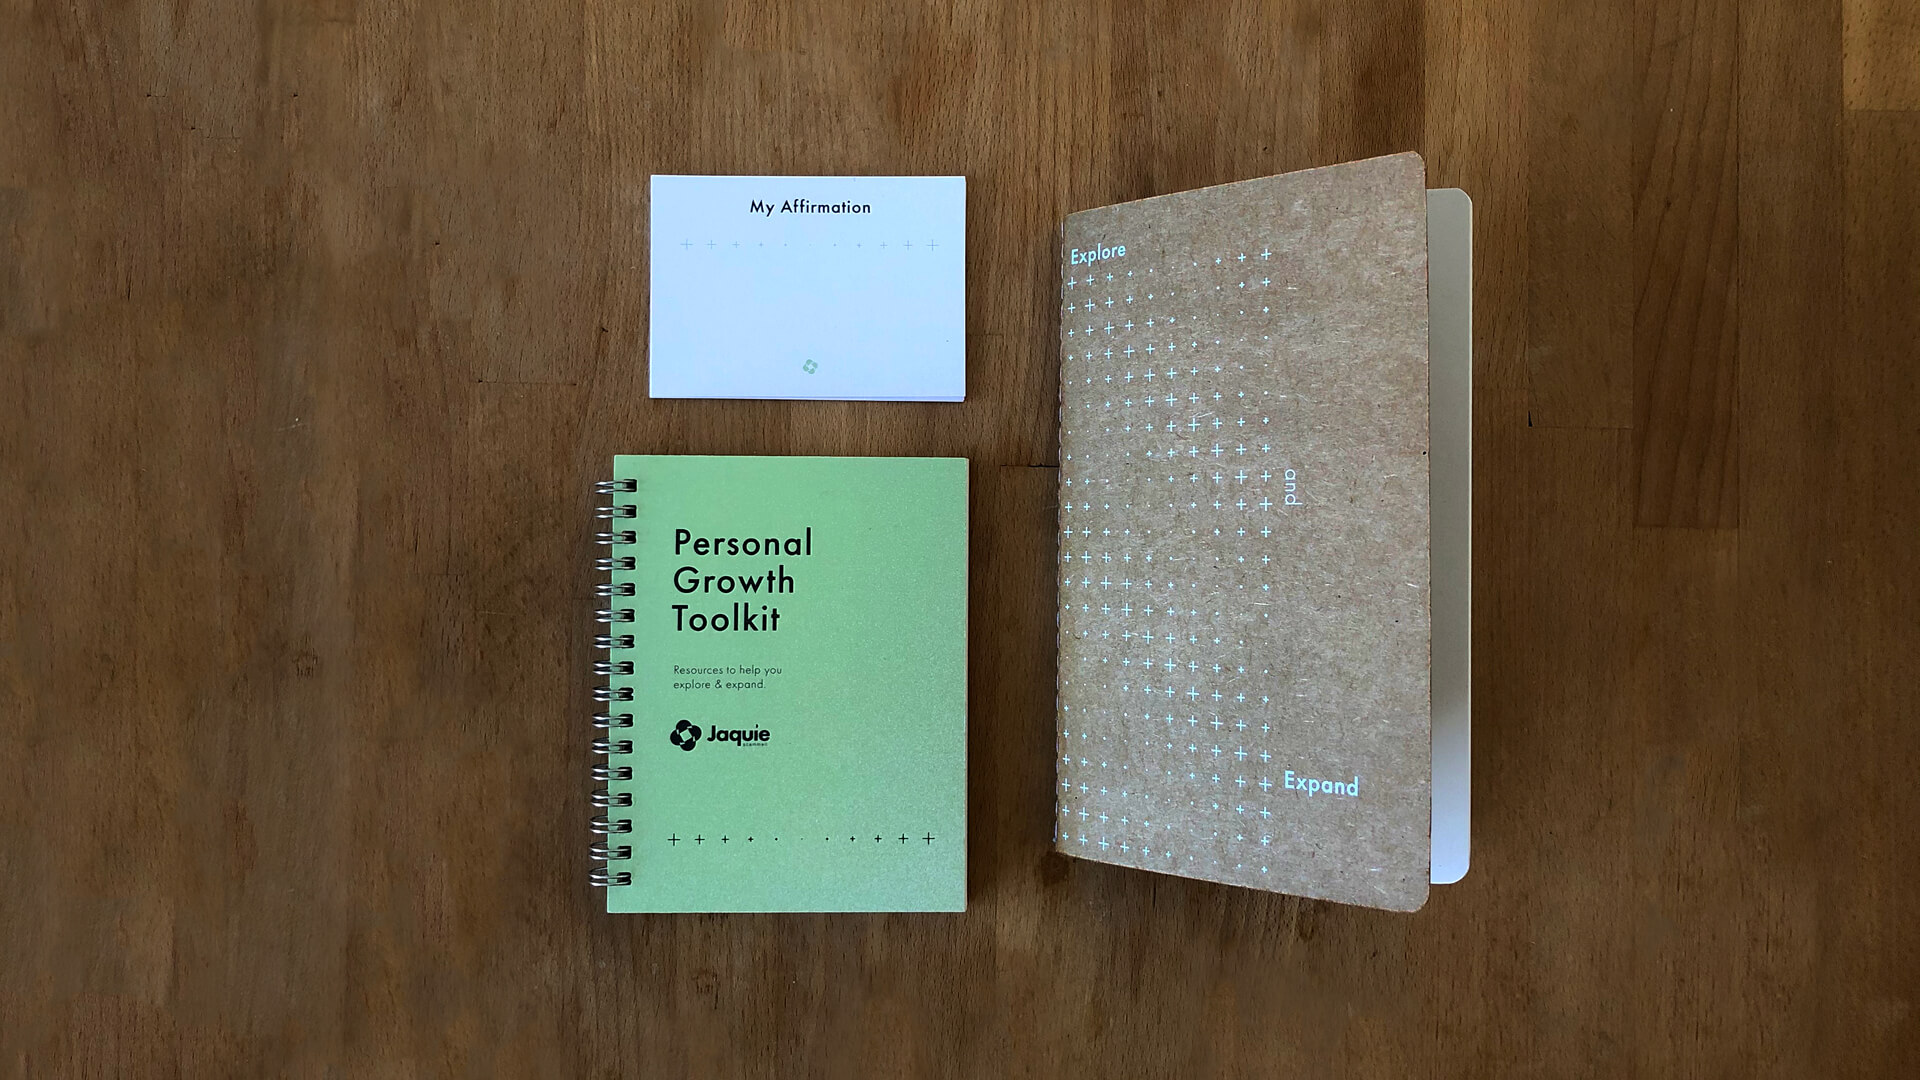 Jaquie-Scammell-Retreat-Printed-Materials-1-Open